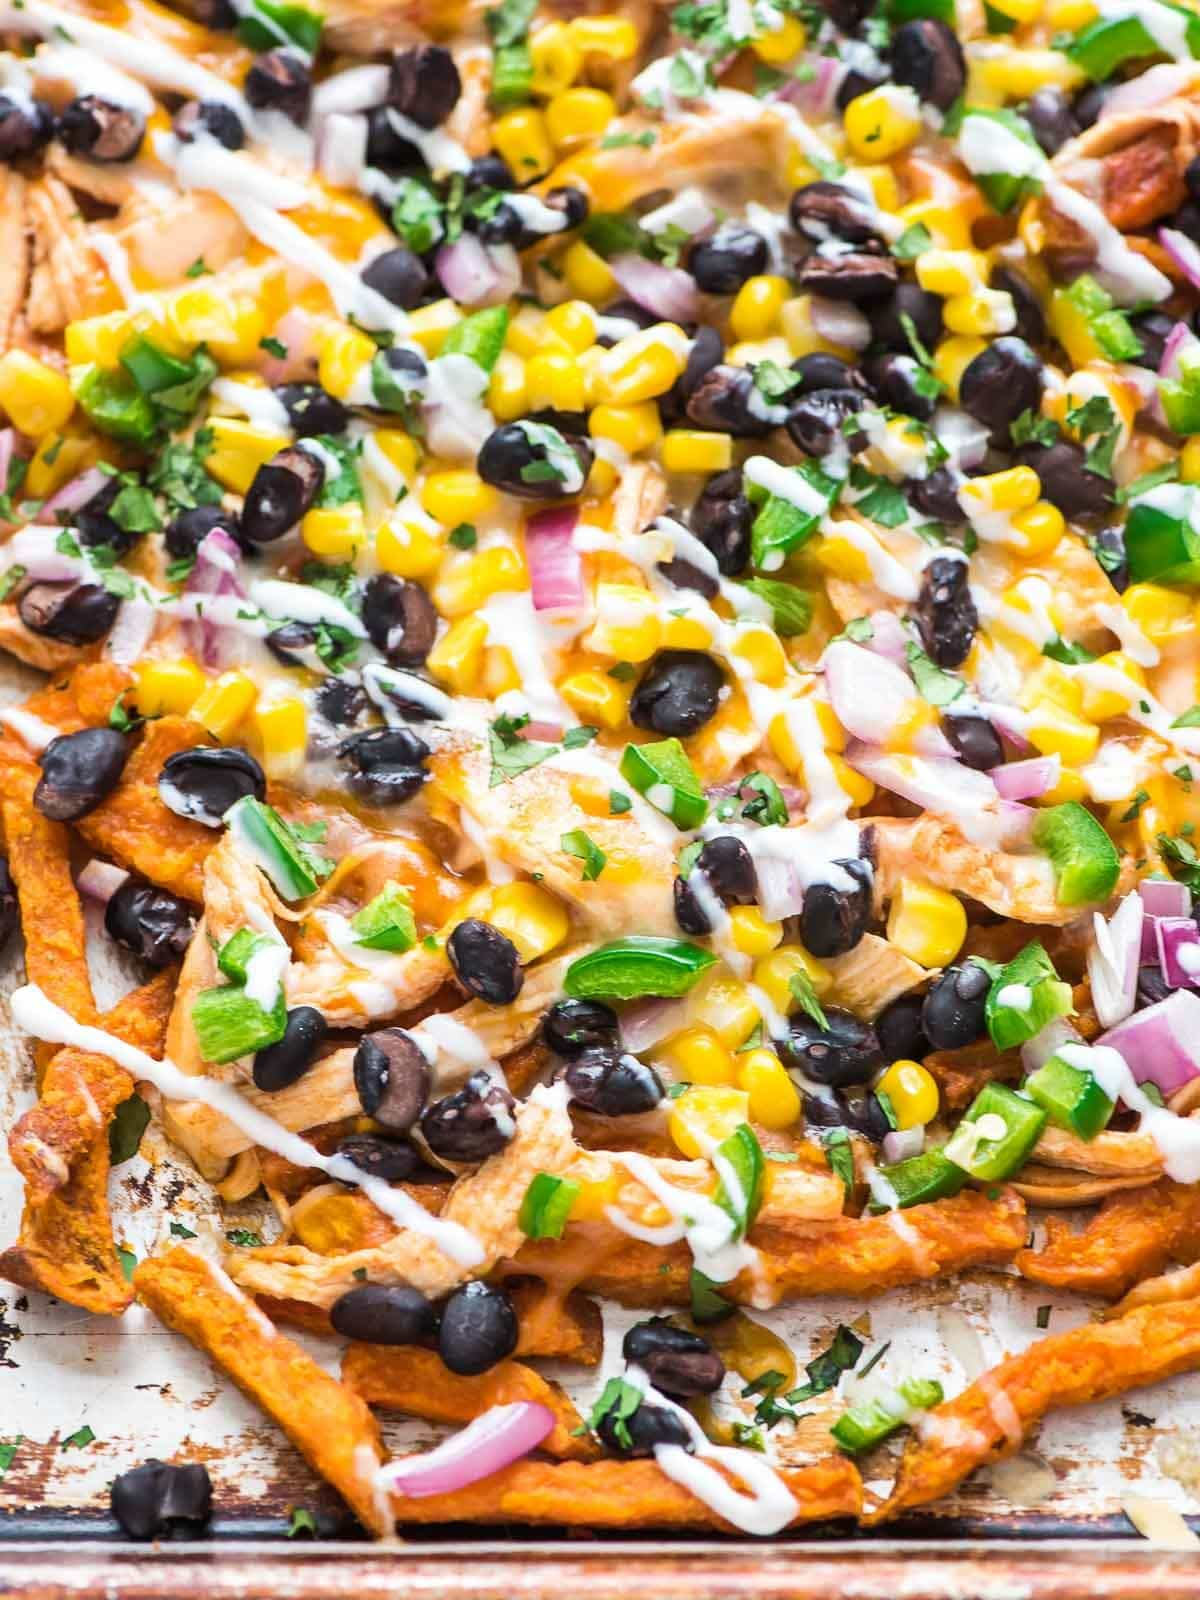 Cheesy Chicken Enchilada Sweet Potato Fries. Frozen baked sweet potato fries topped with chicken, enchilada sauce, CHEESE, black beans, and more! An easy party appetizer recipe that's perfect for football watches, game day, and tailgates. Recipe at wellplated.com | @wellplated